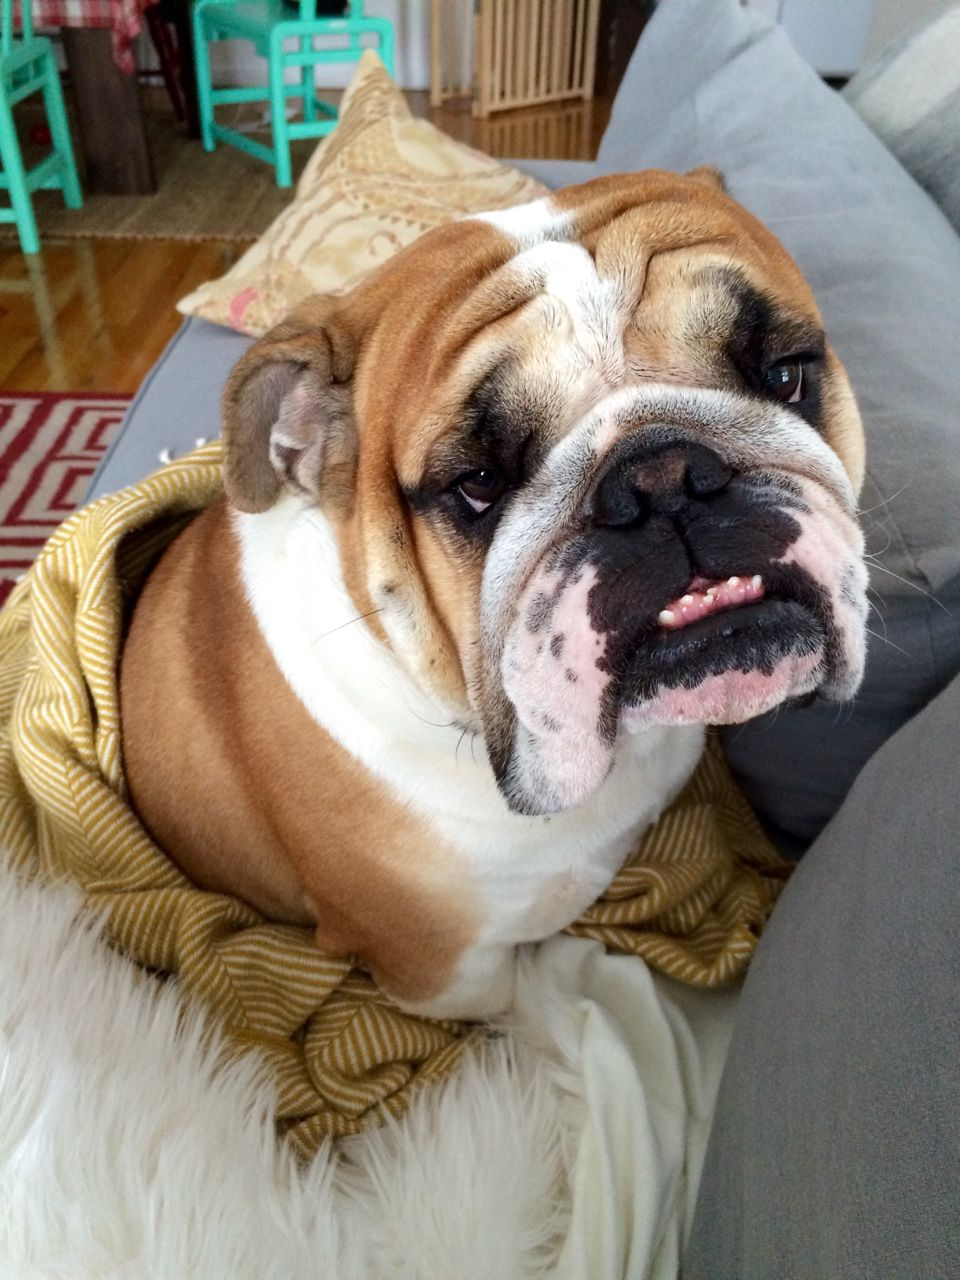 Bulldog Puppies For Sale –What to Look for When Buying a Bulldog Puppy